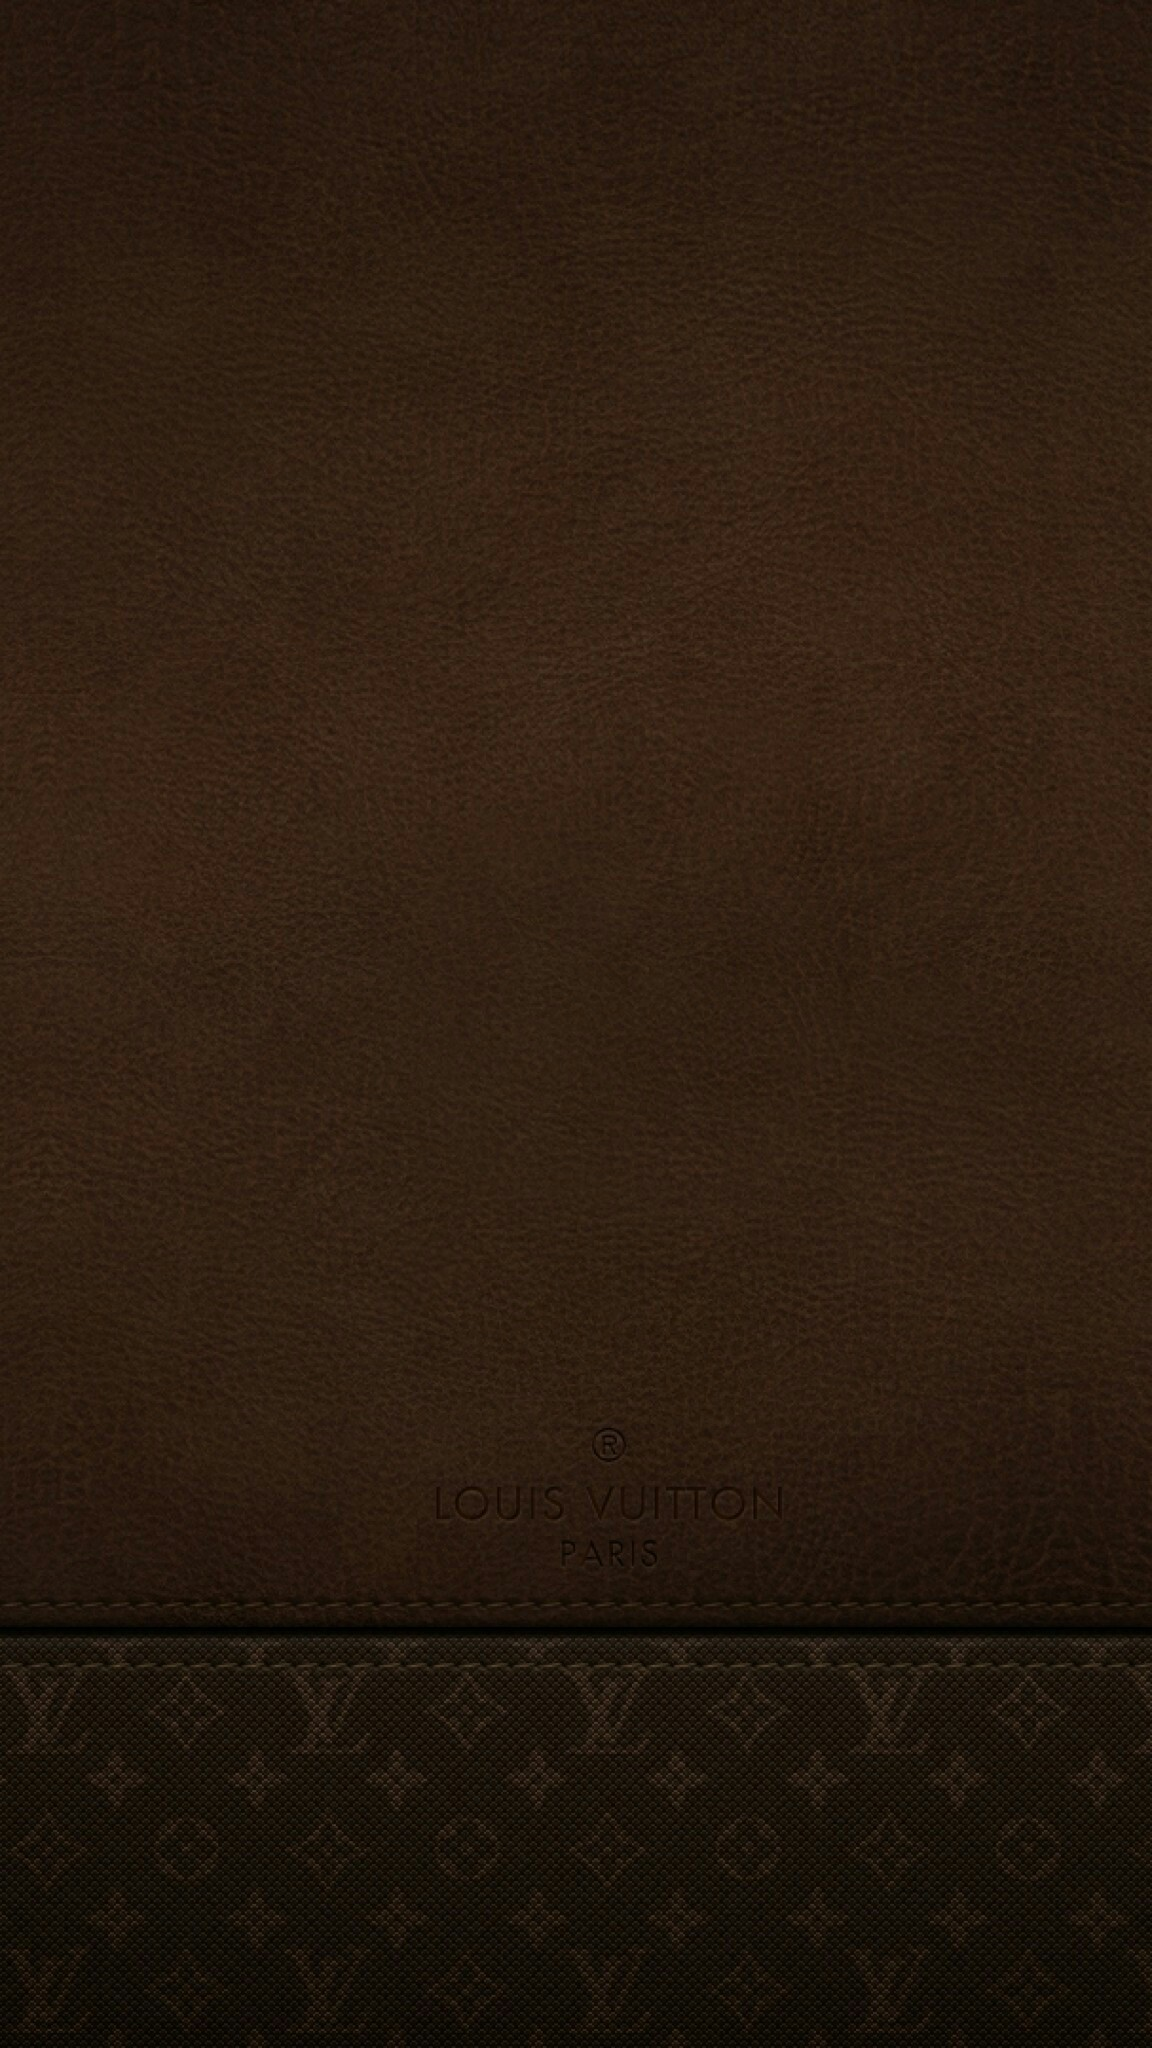 1152x2048 Brown Leather Louis Vuitton Wallpaper